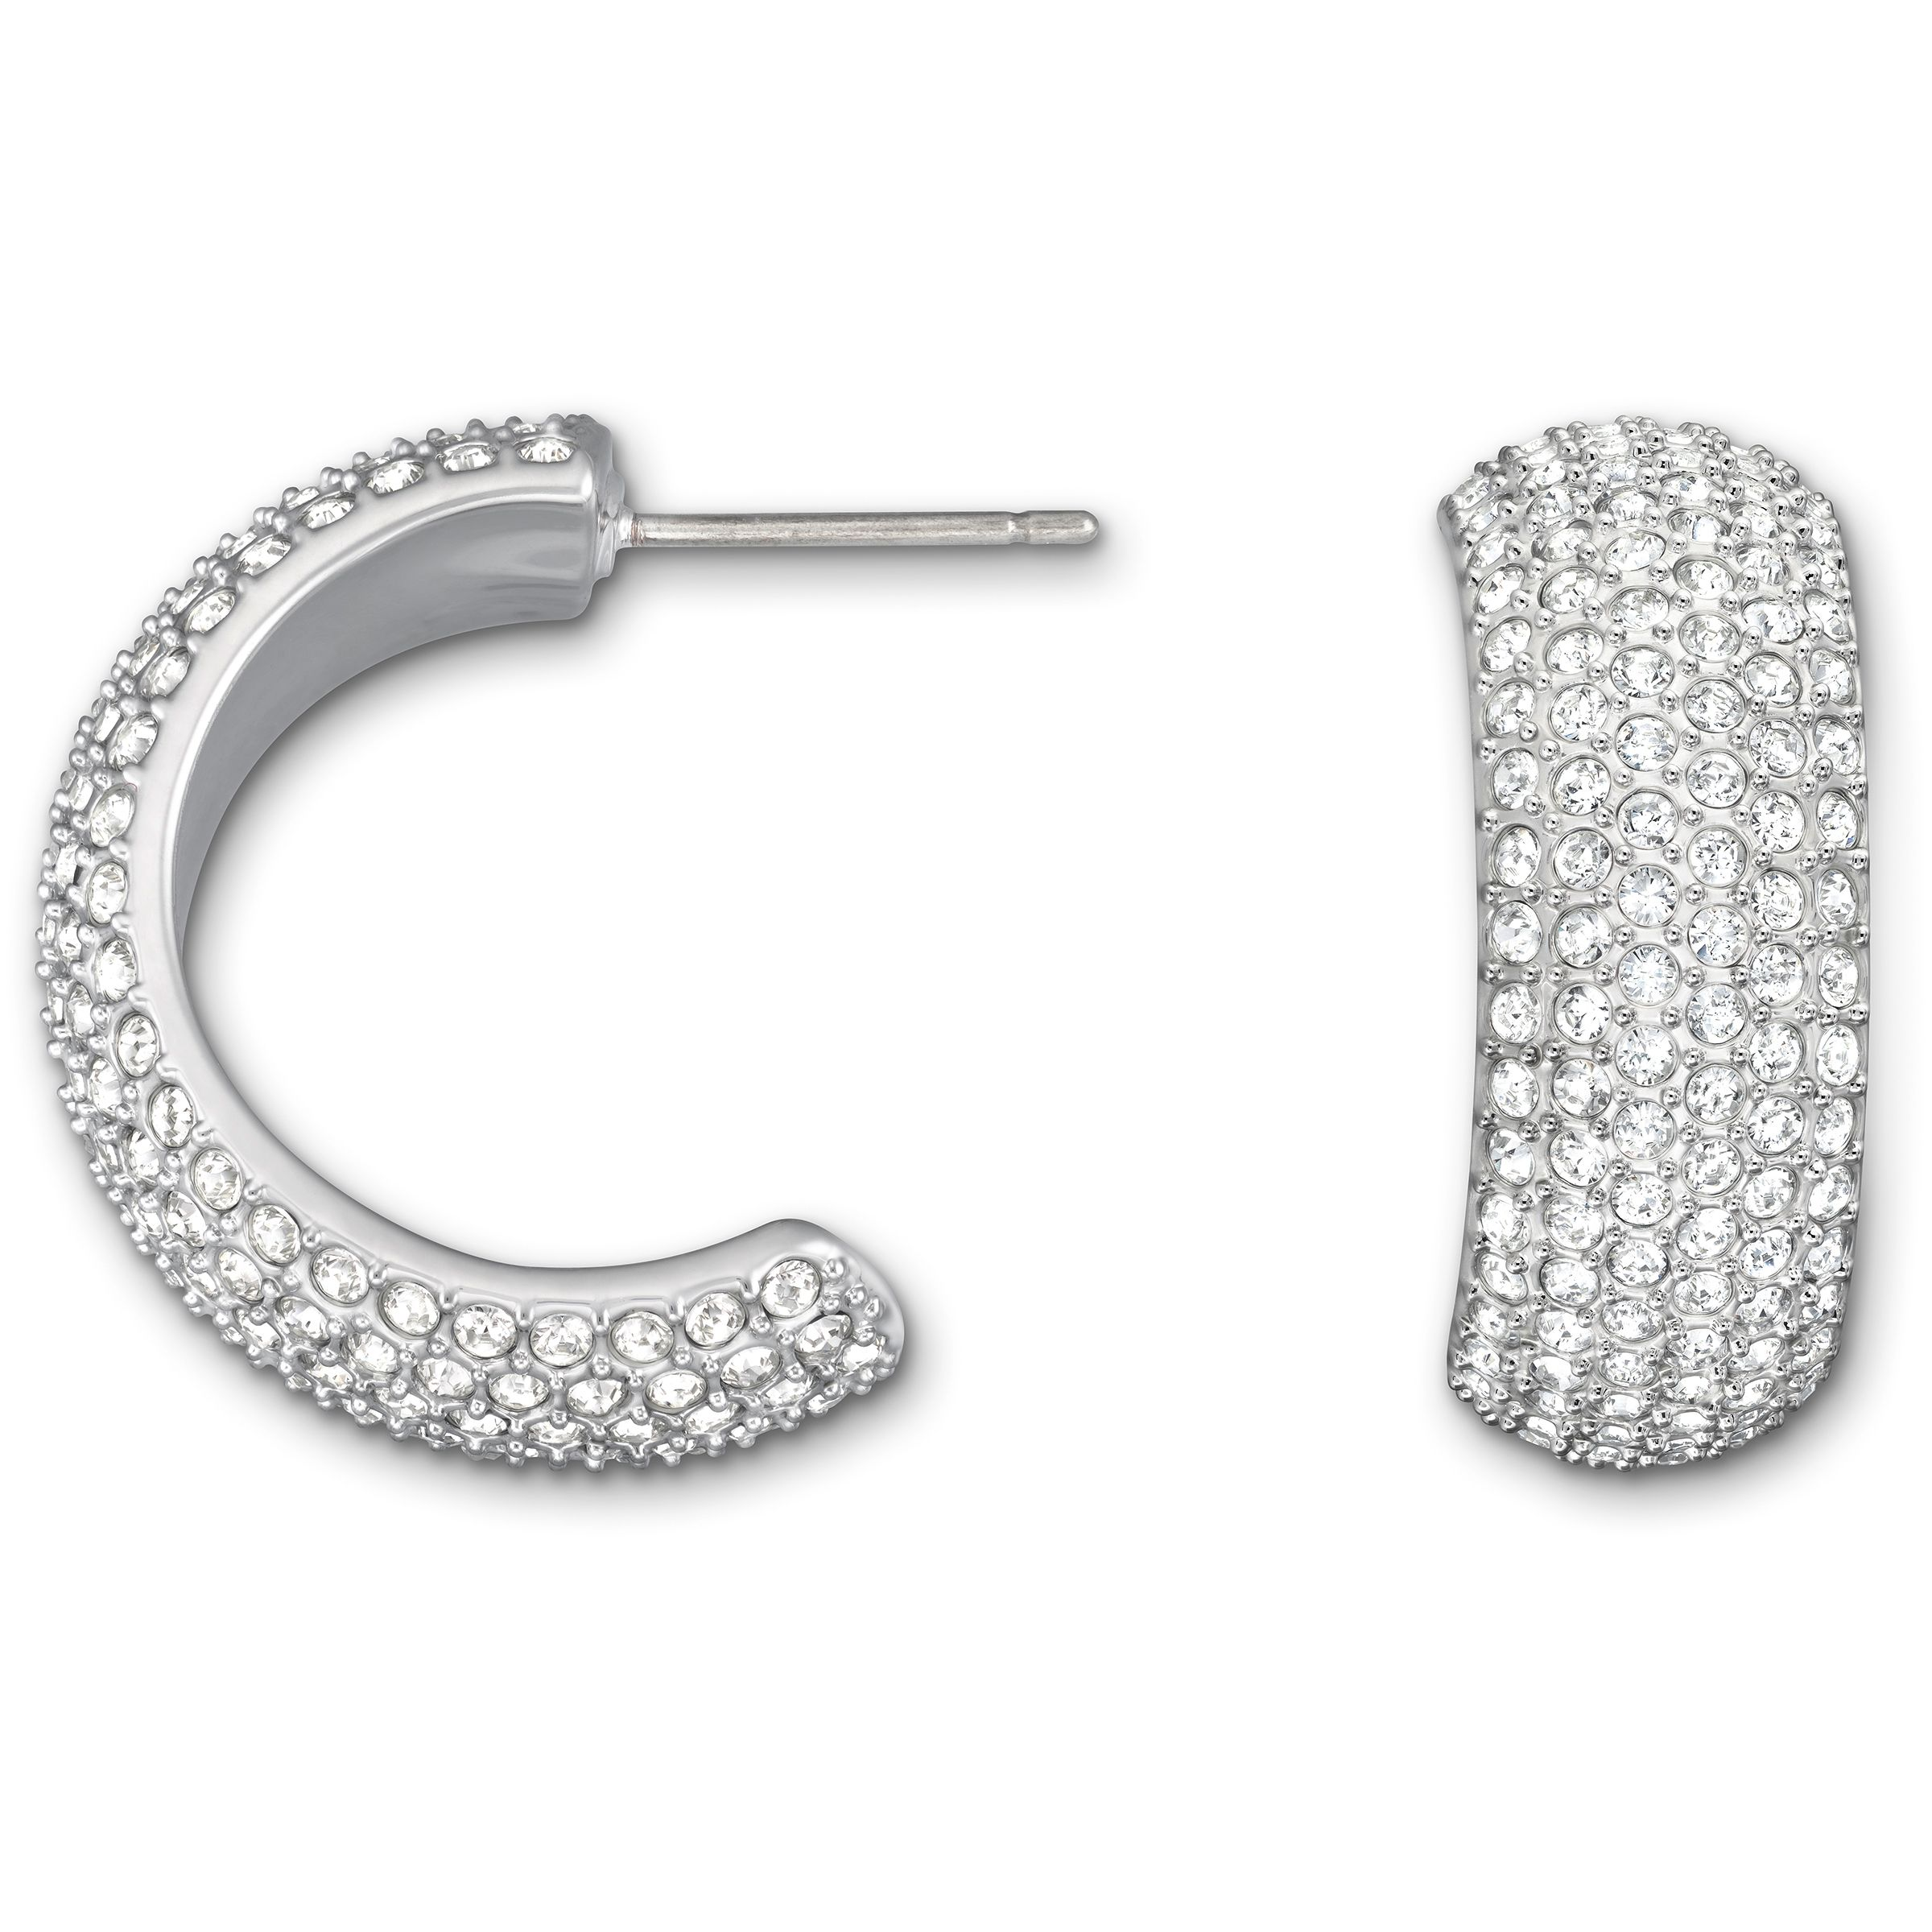 Palace wide pierced earrings